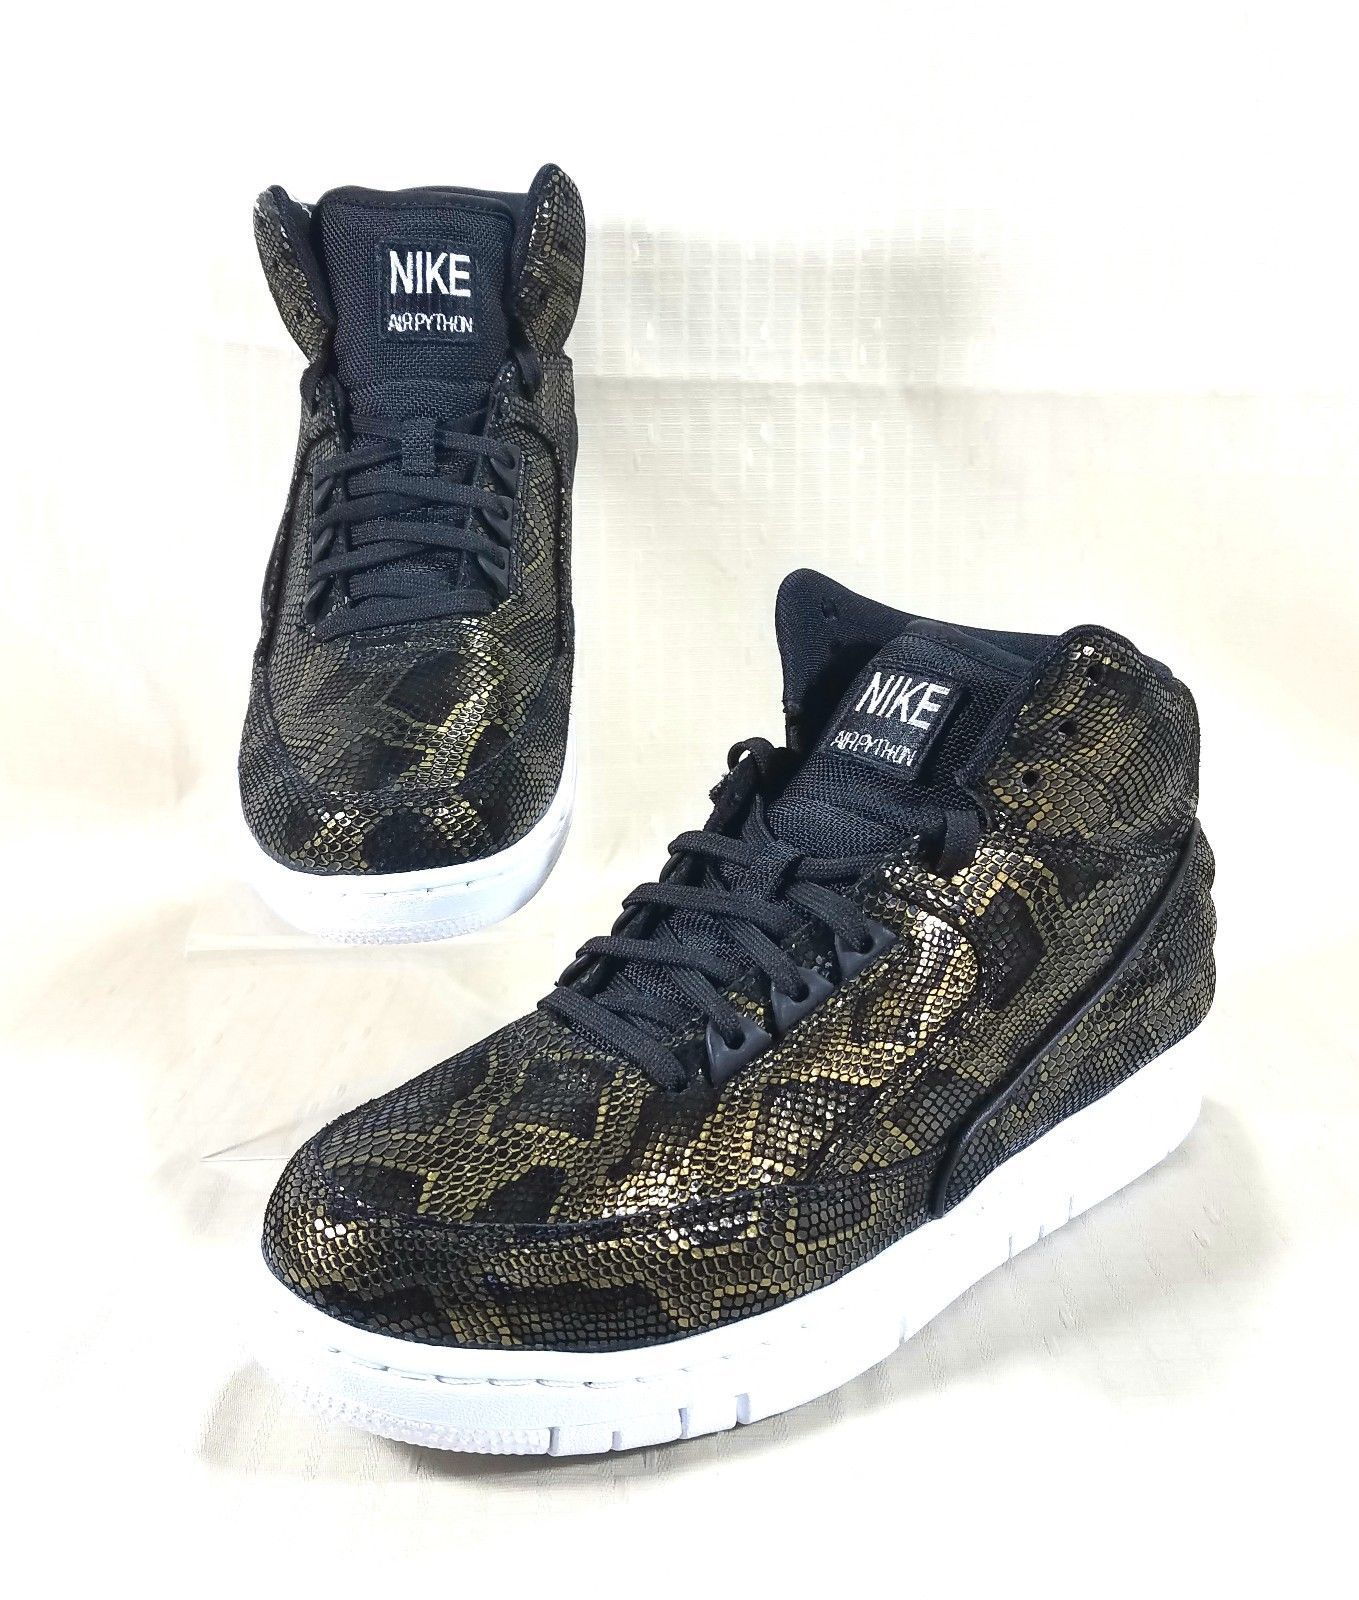 a191a60f3da233 Nike Air Python Premium Sneakers Men s Size and 28 similar items